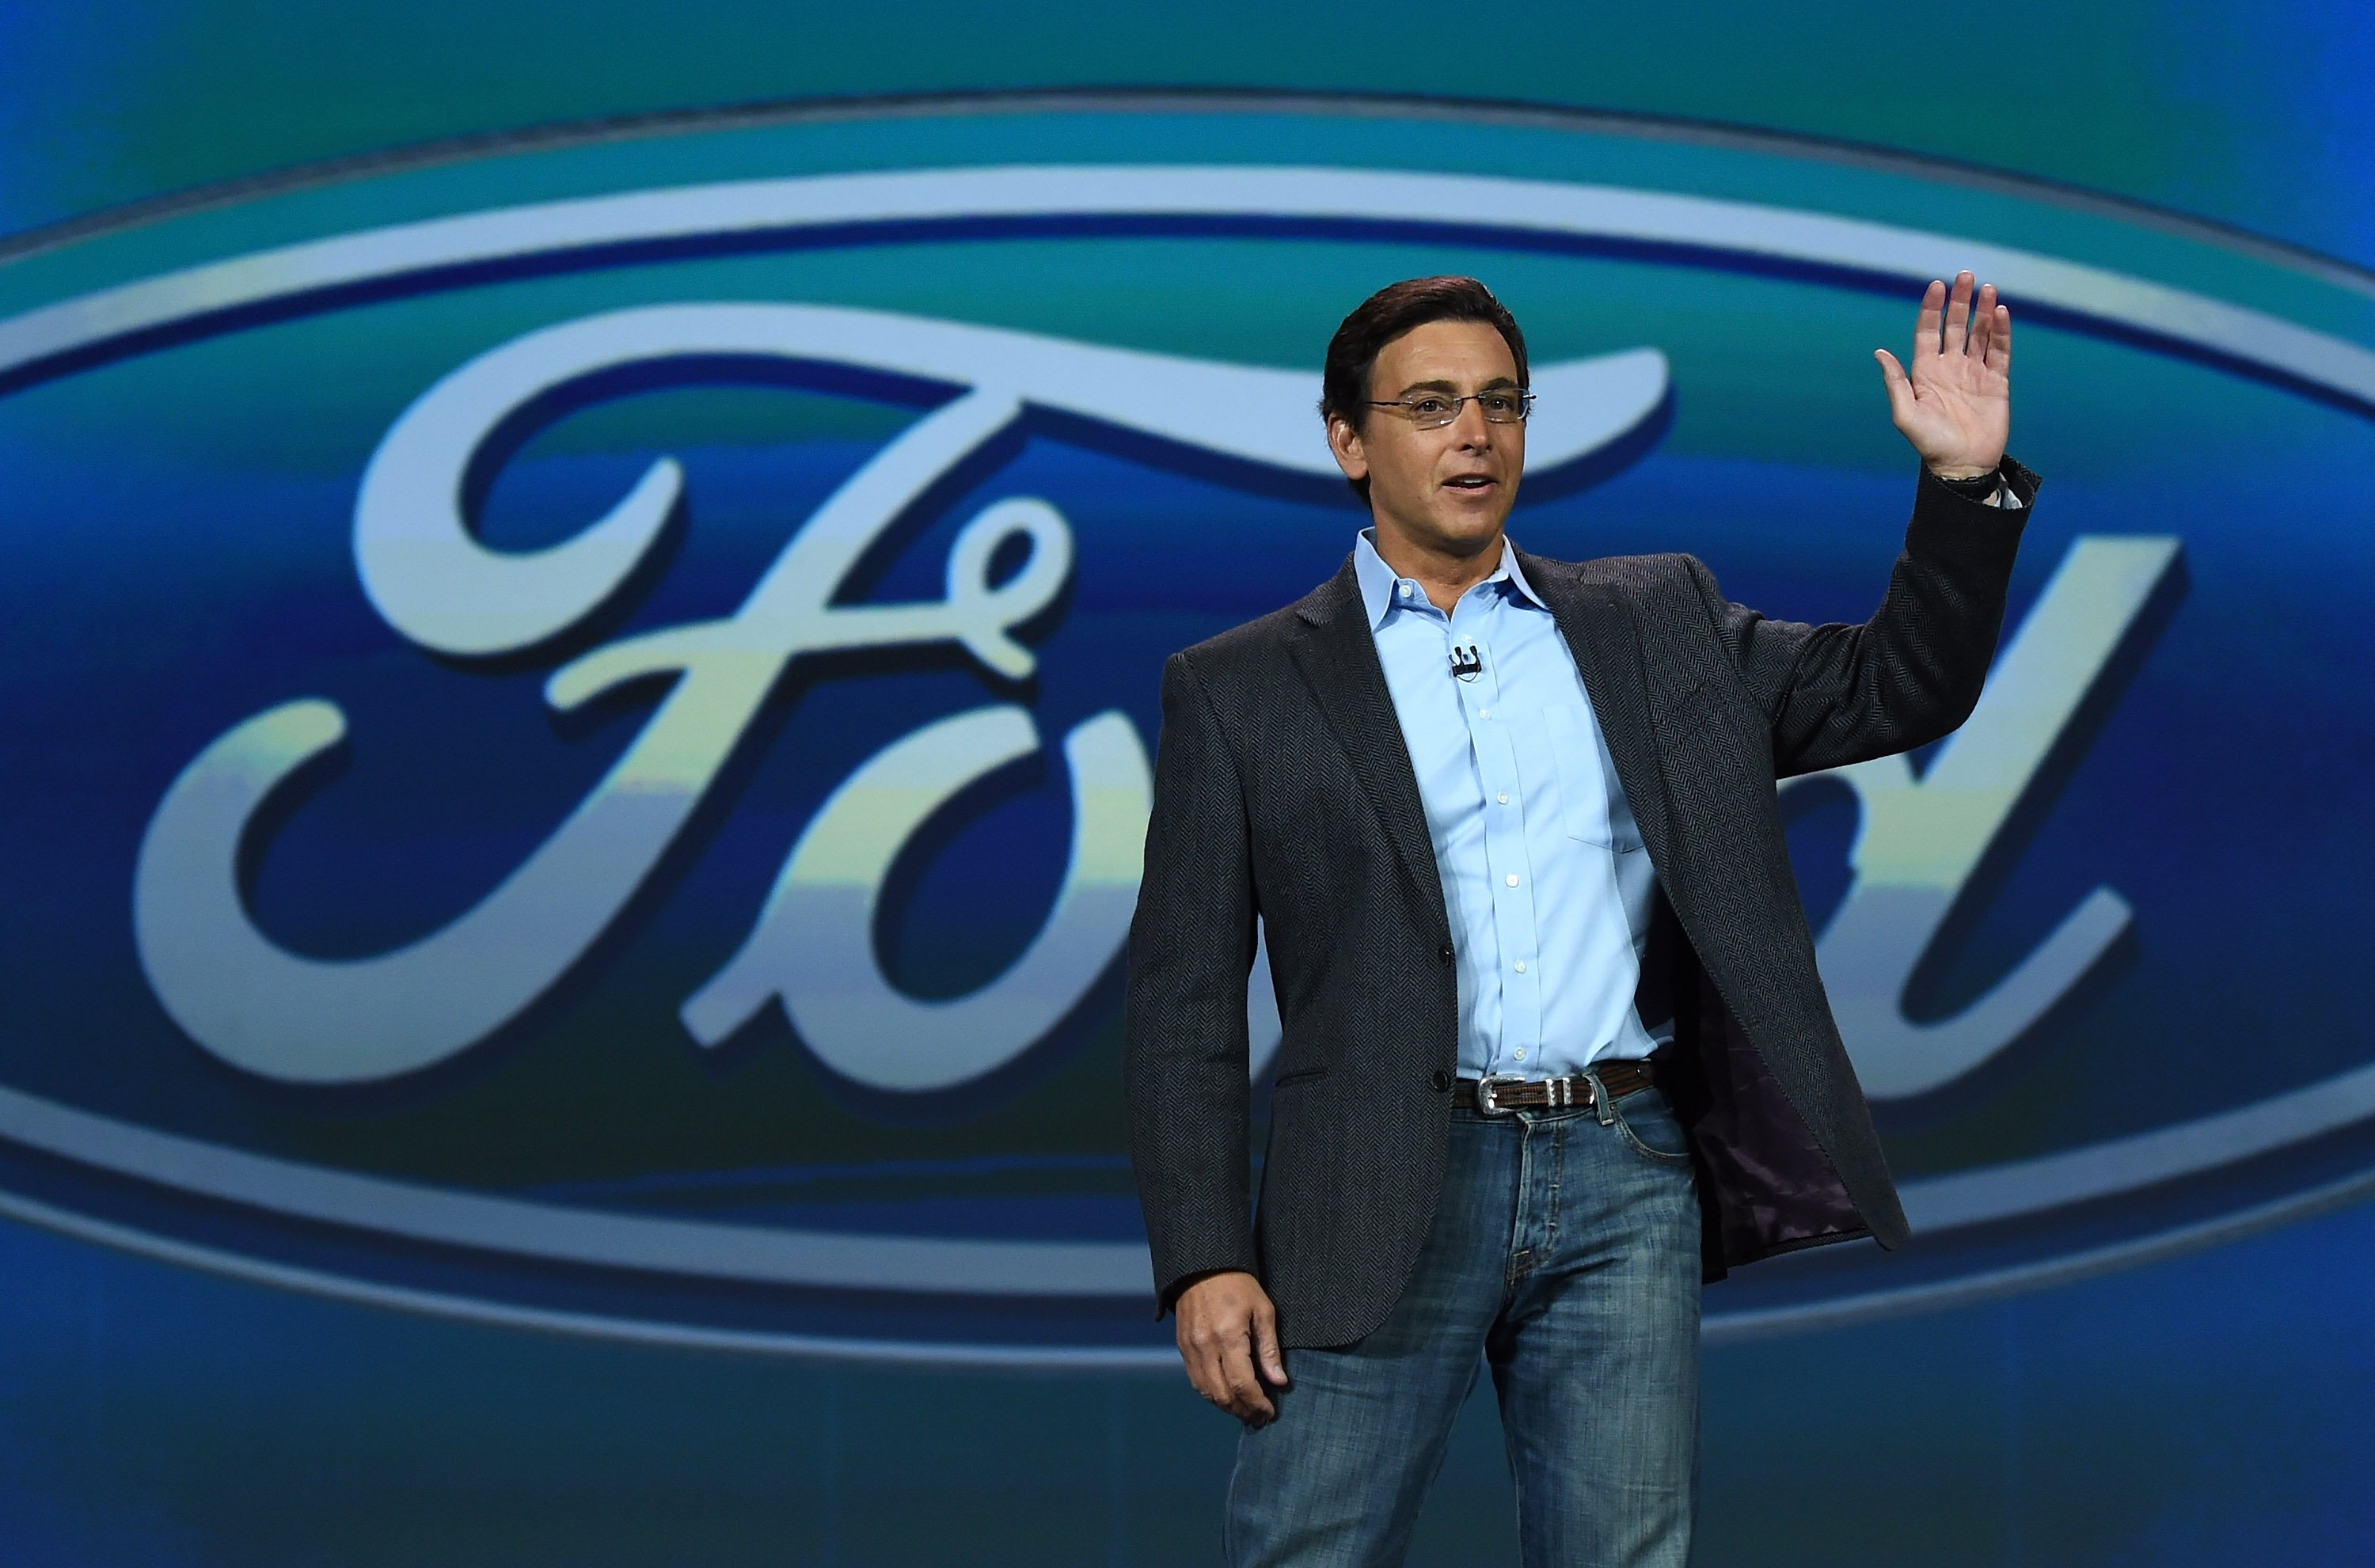 President and CEO of Ford Motor Co. Mark Fields delivers a keynote address at the 2015 International CES at The Venetian Las Vegas on Jan. 6, 2015 in Las Vegas,